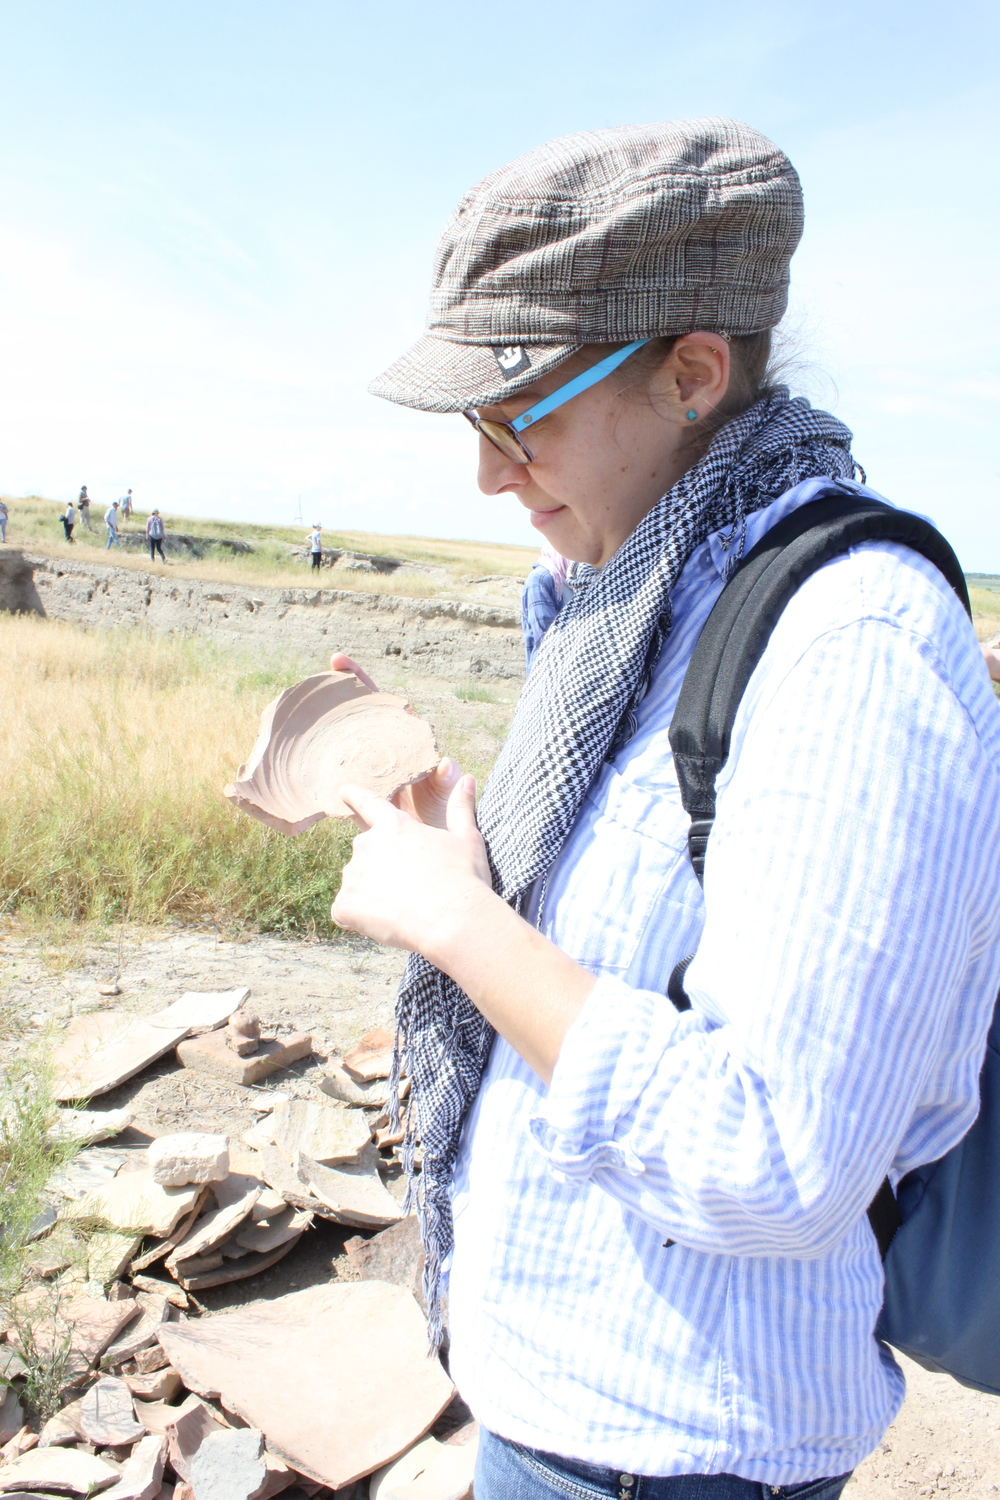 Natalie examining a piece of pottery sherd